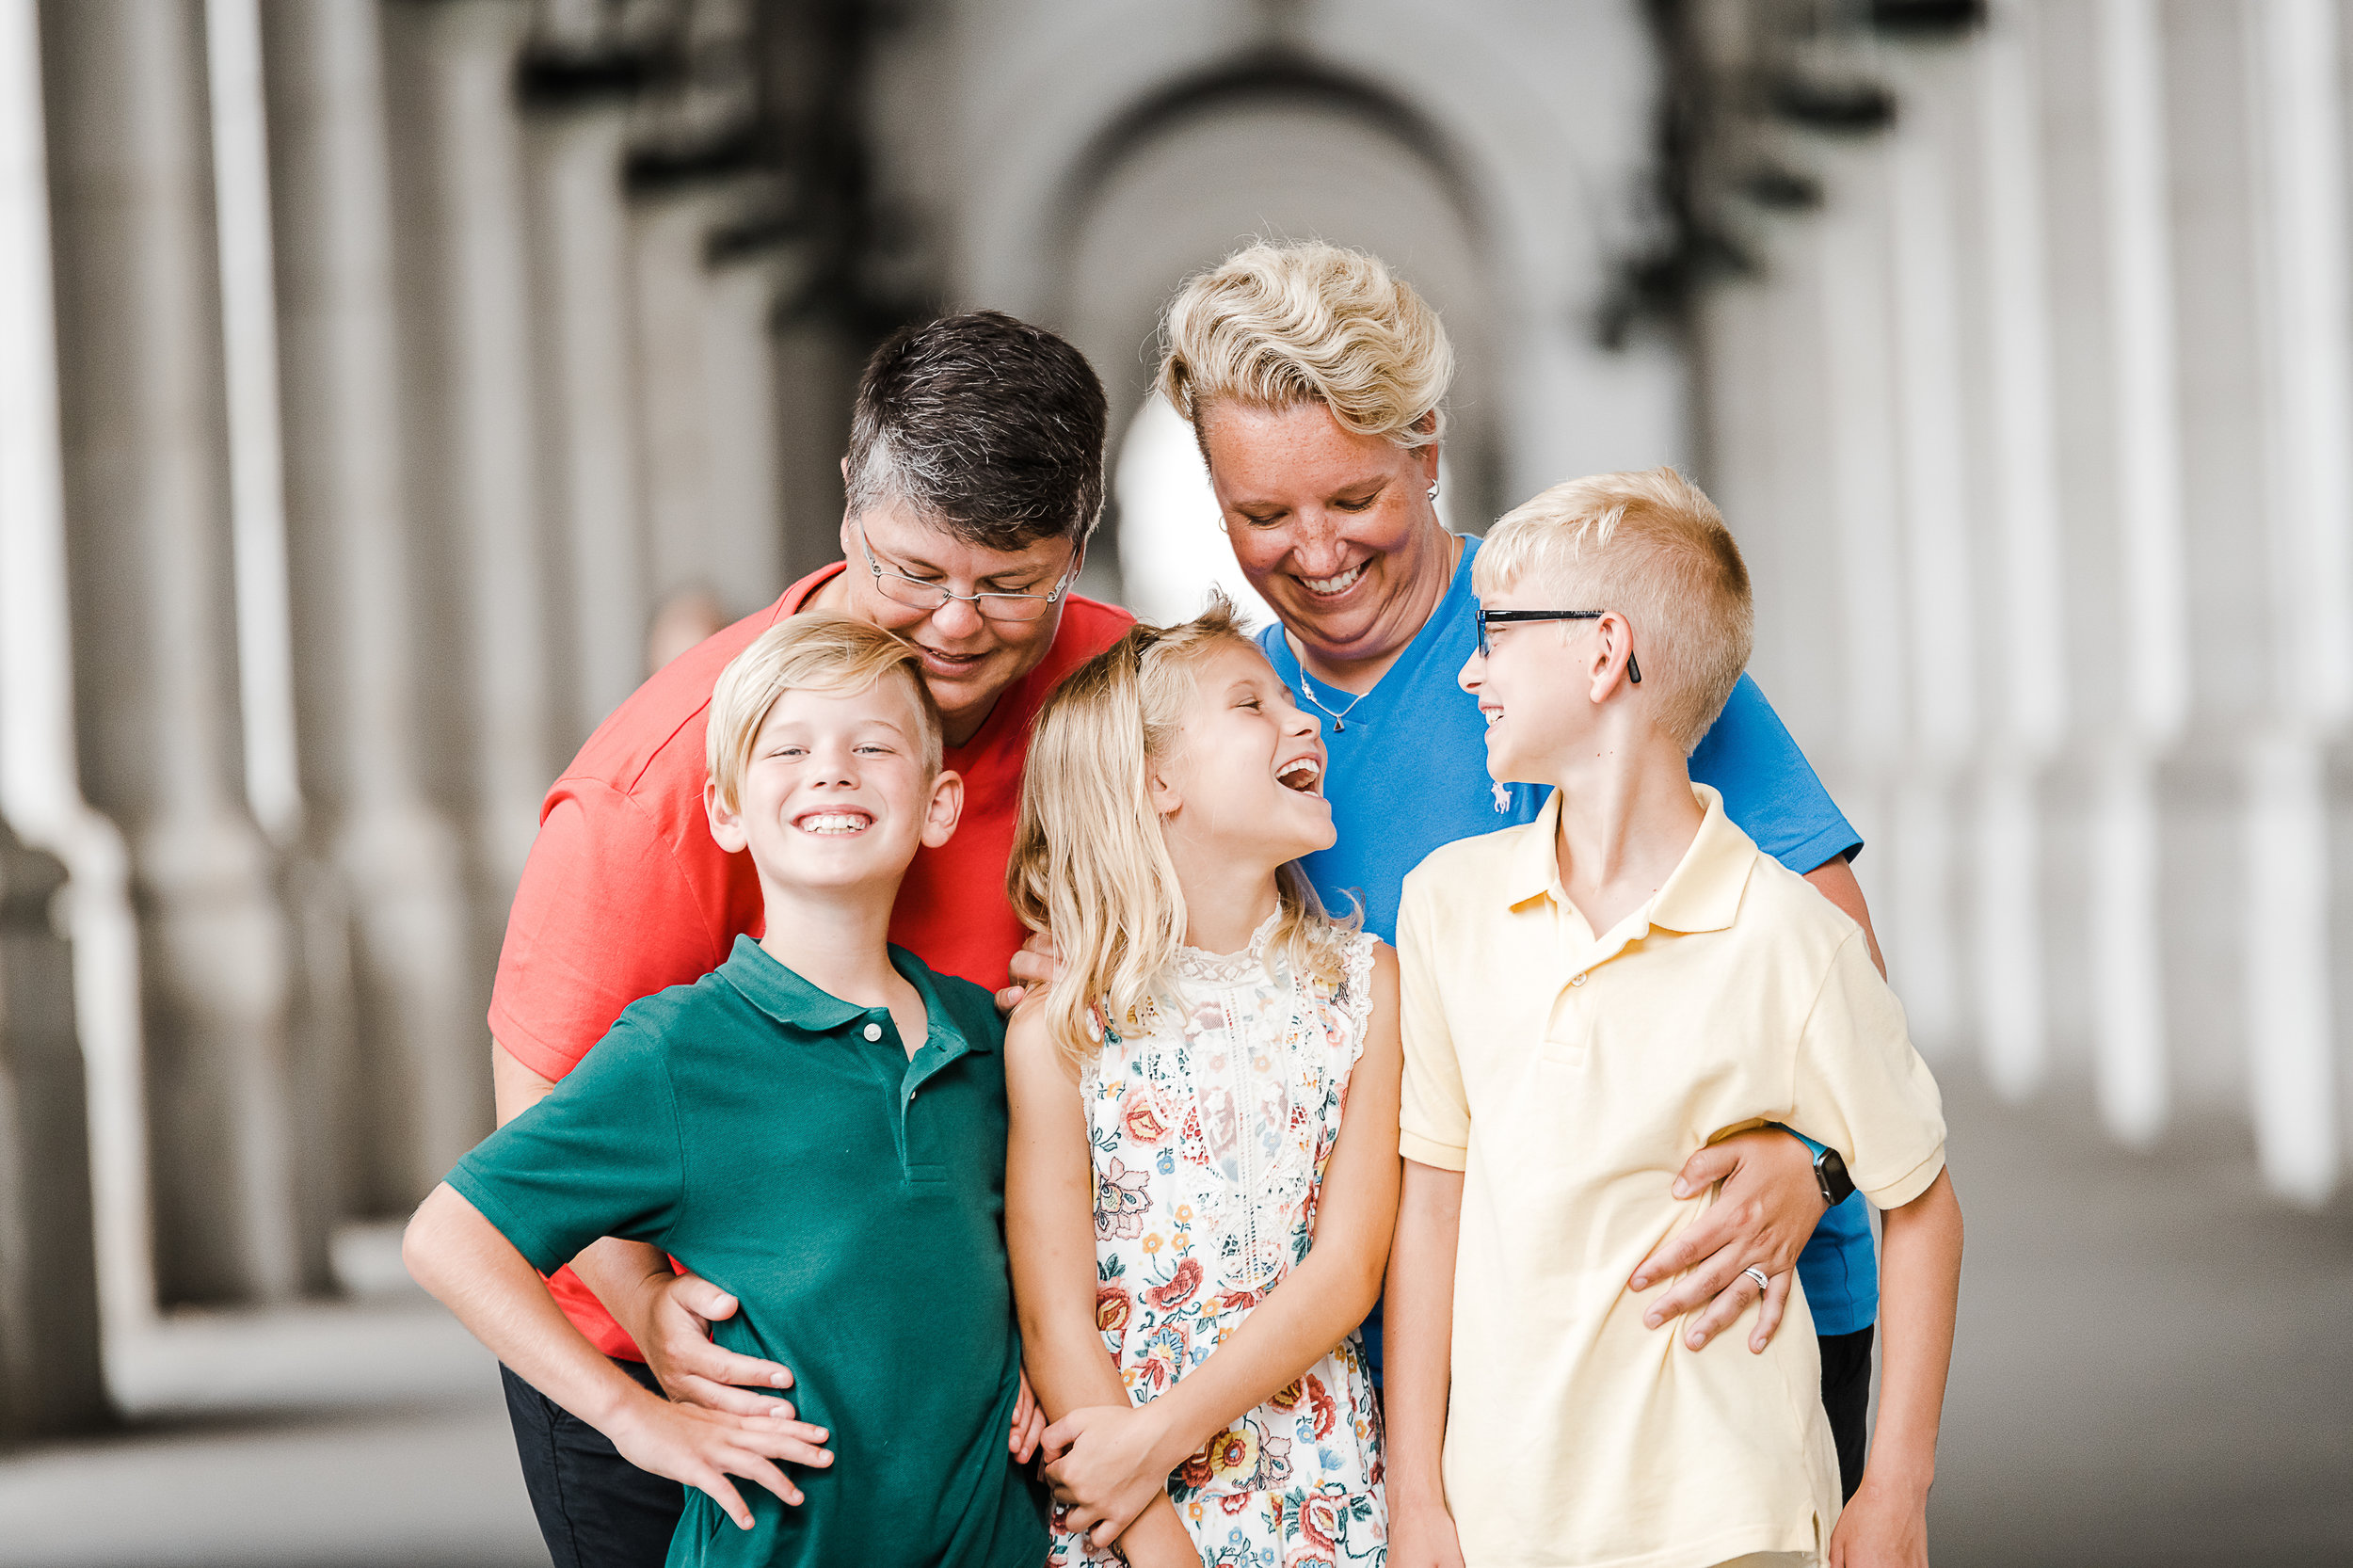 Union Station family photography